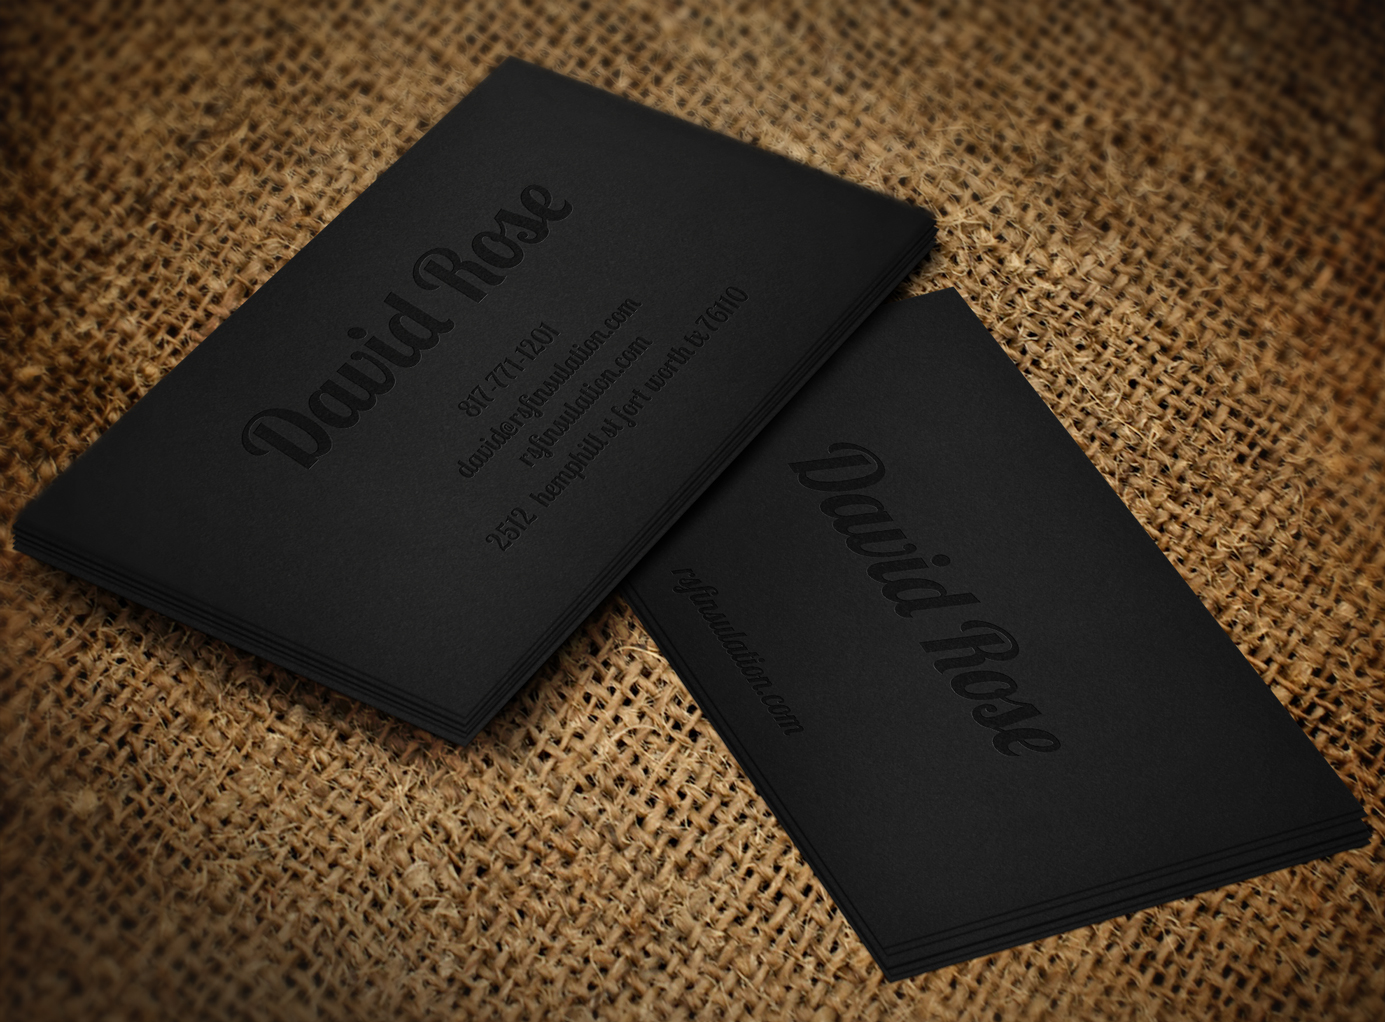 Bold professional residential business card design for rose spray business card design by creation lanka for rose spray foam insulation design 5687206 colourmoves Choice Image